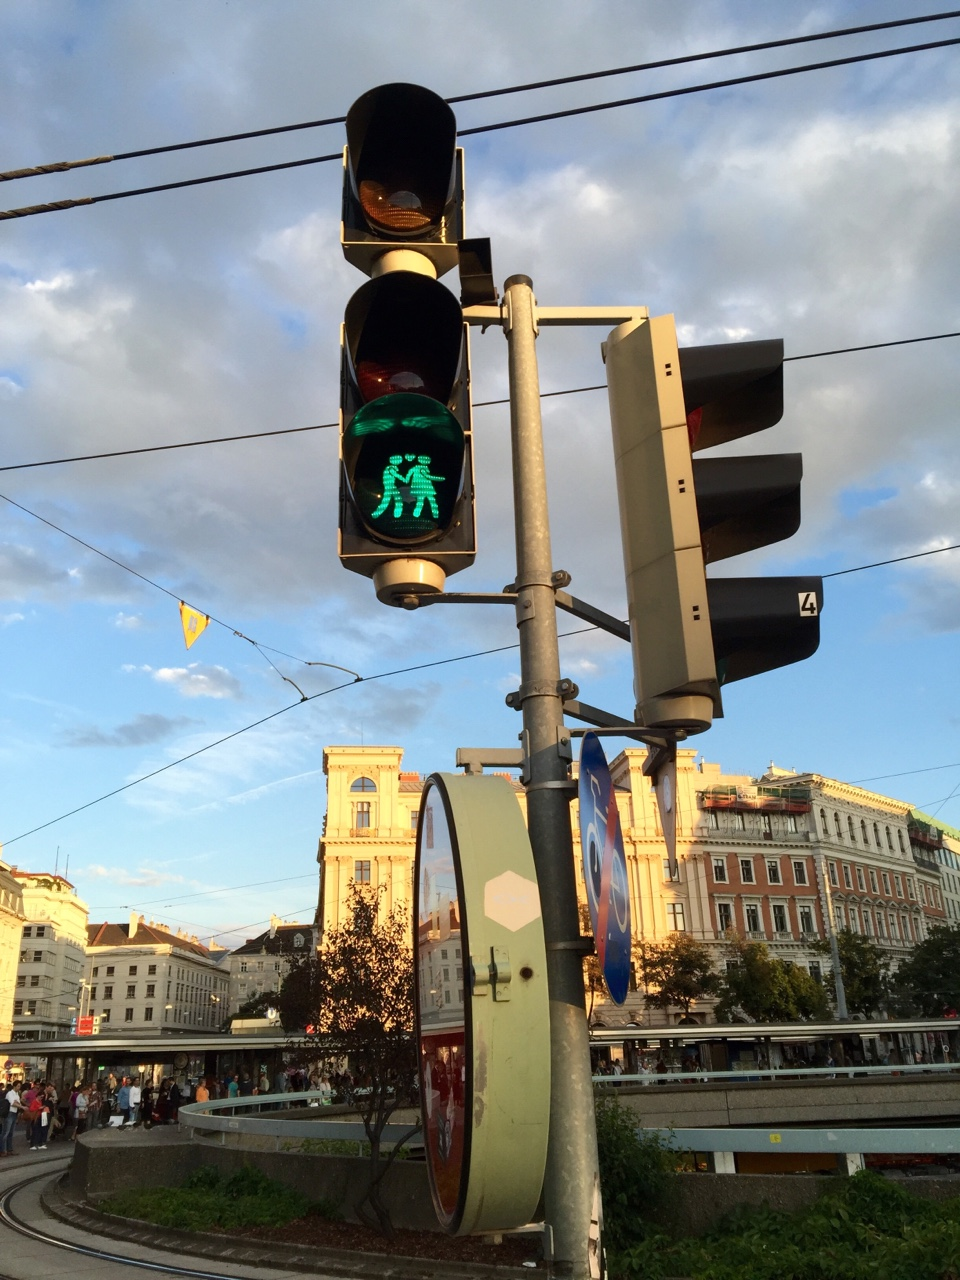 Vienna, Austria    By far the best walk signal that I have seen anywhere in the world.